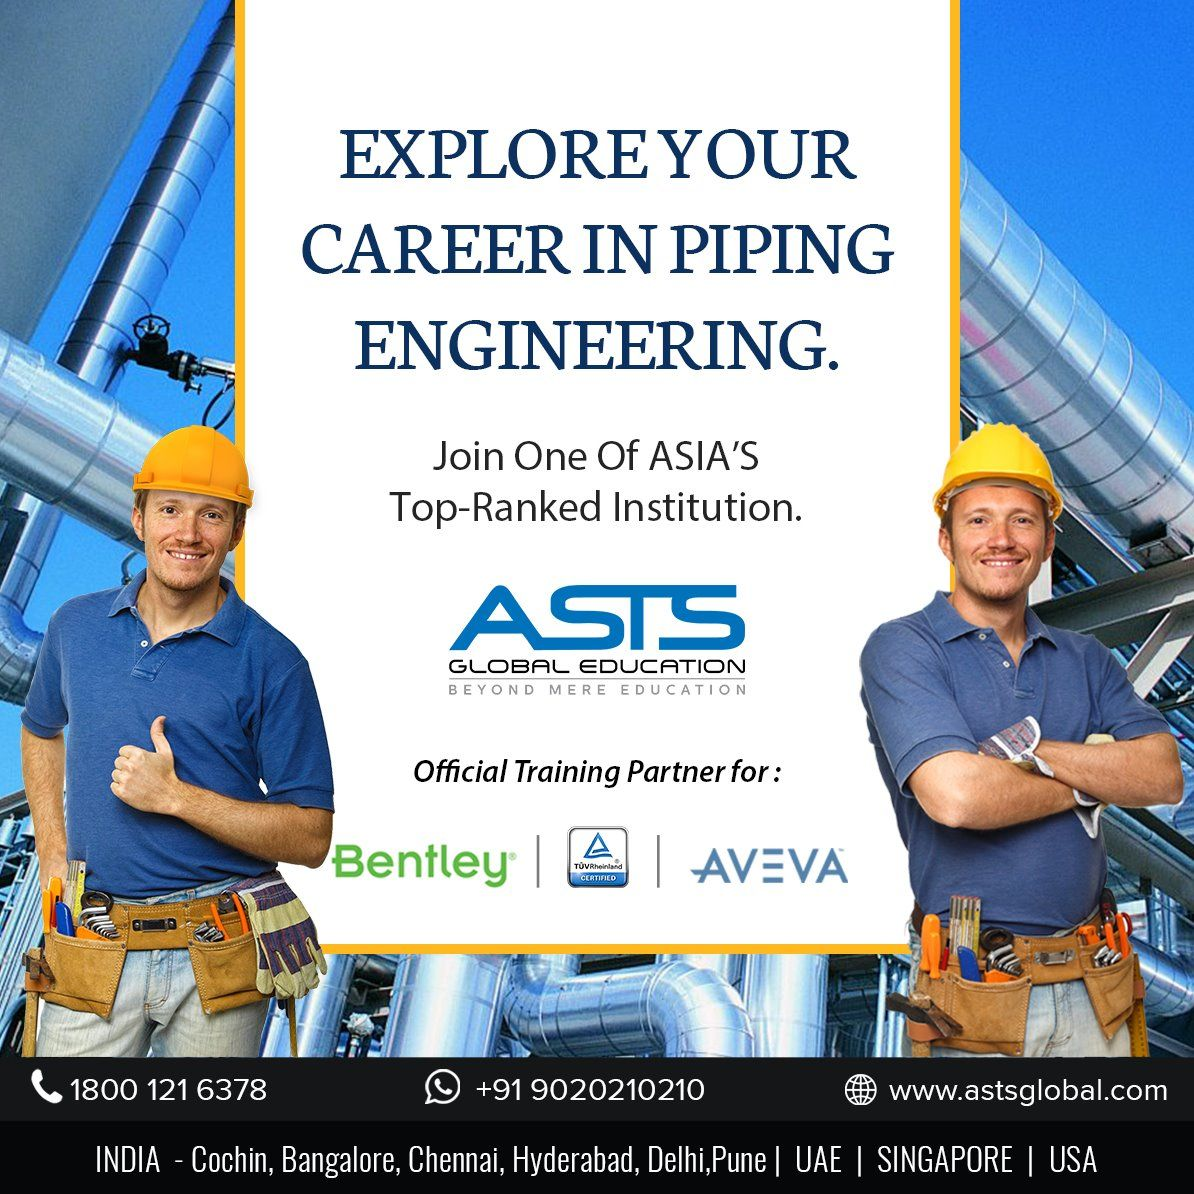 Get ahead and explore your career in Piping Engineering